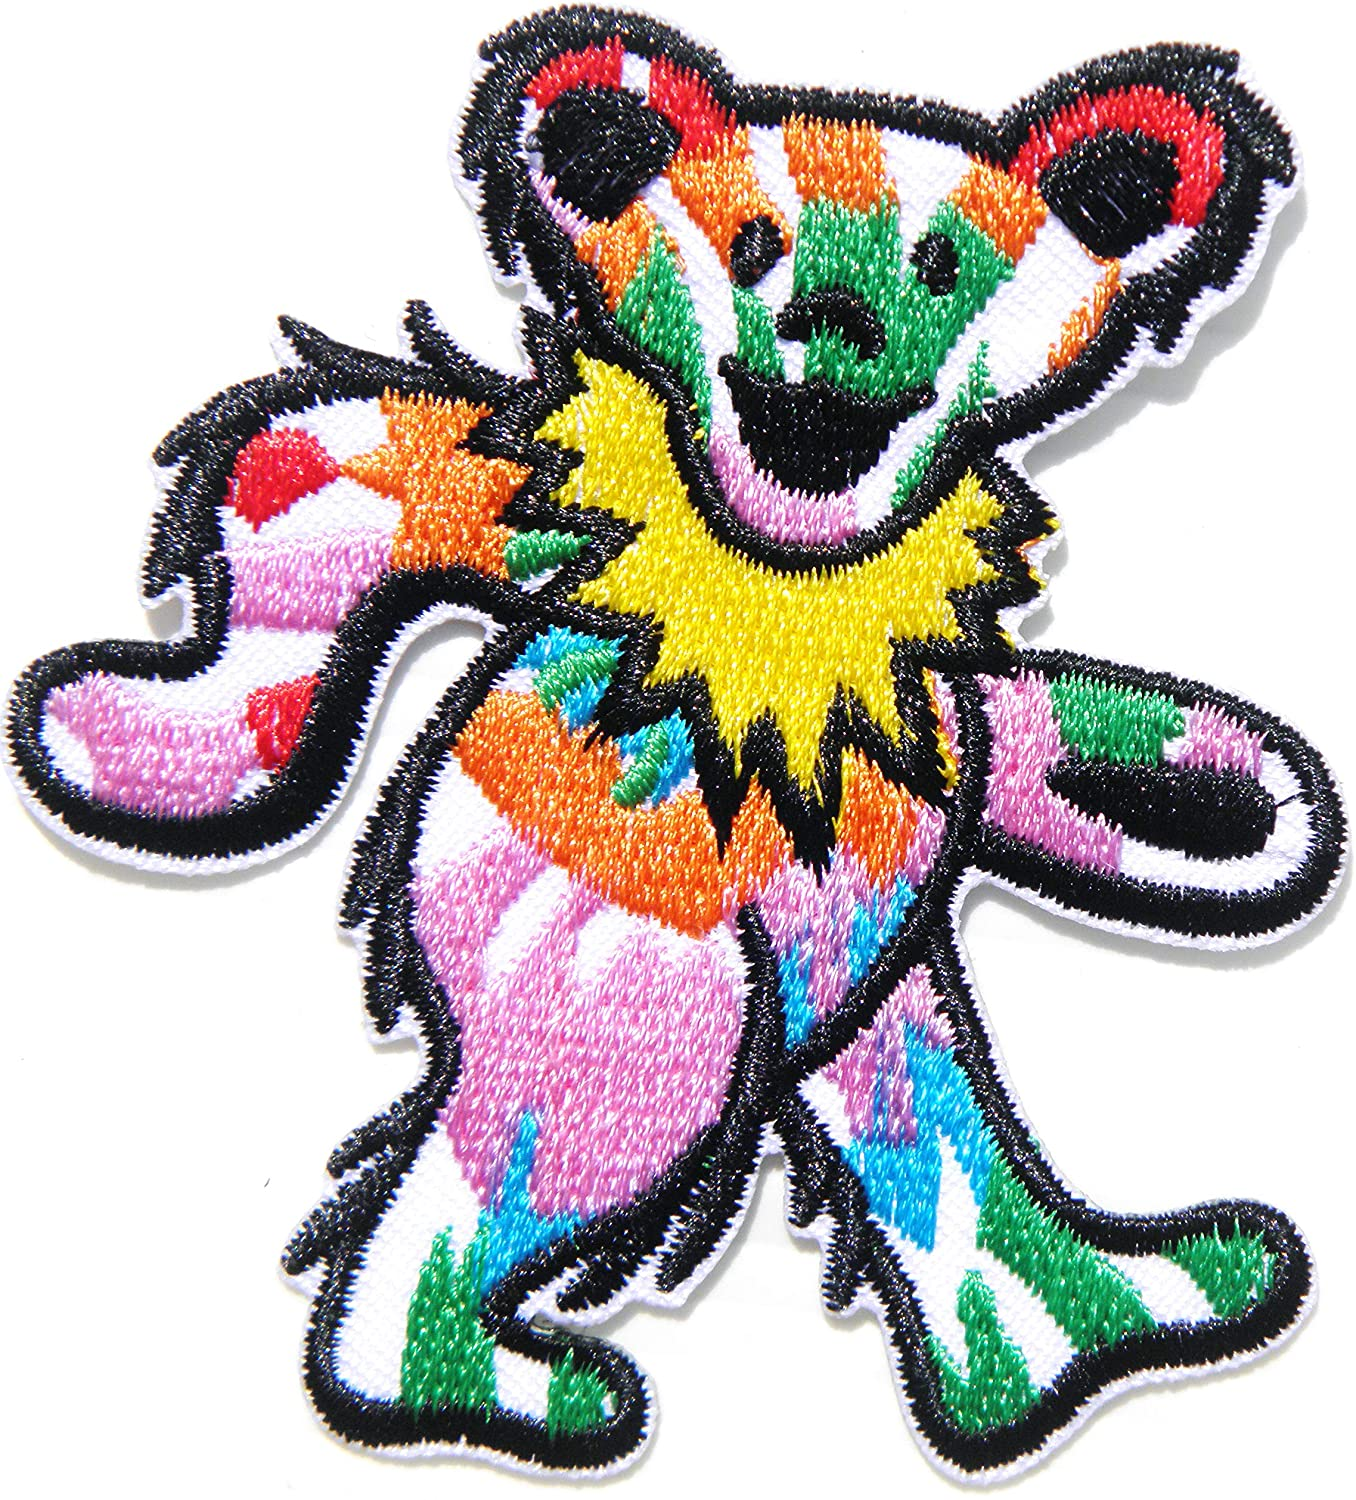 Teddy Bear Colorful Figure Doll Patch Iron on Embroidery Applique Clothes for T Shirt Jacket Vest Bag Craft Costume Logo Badge Sign Emblem Gift